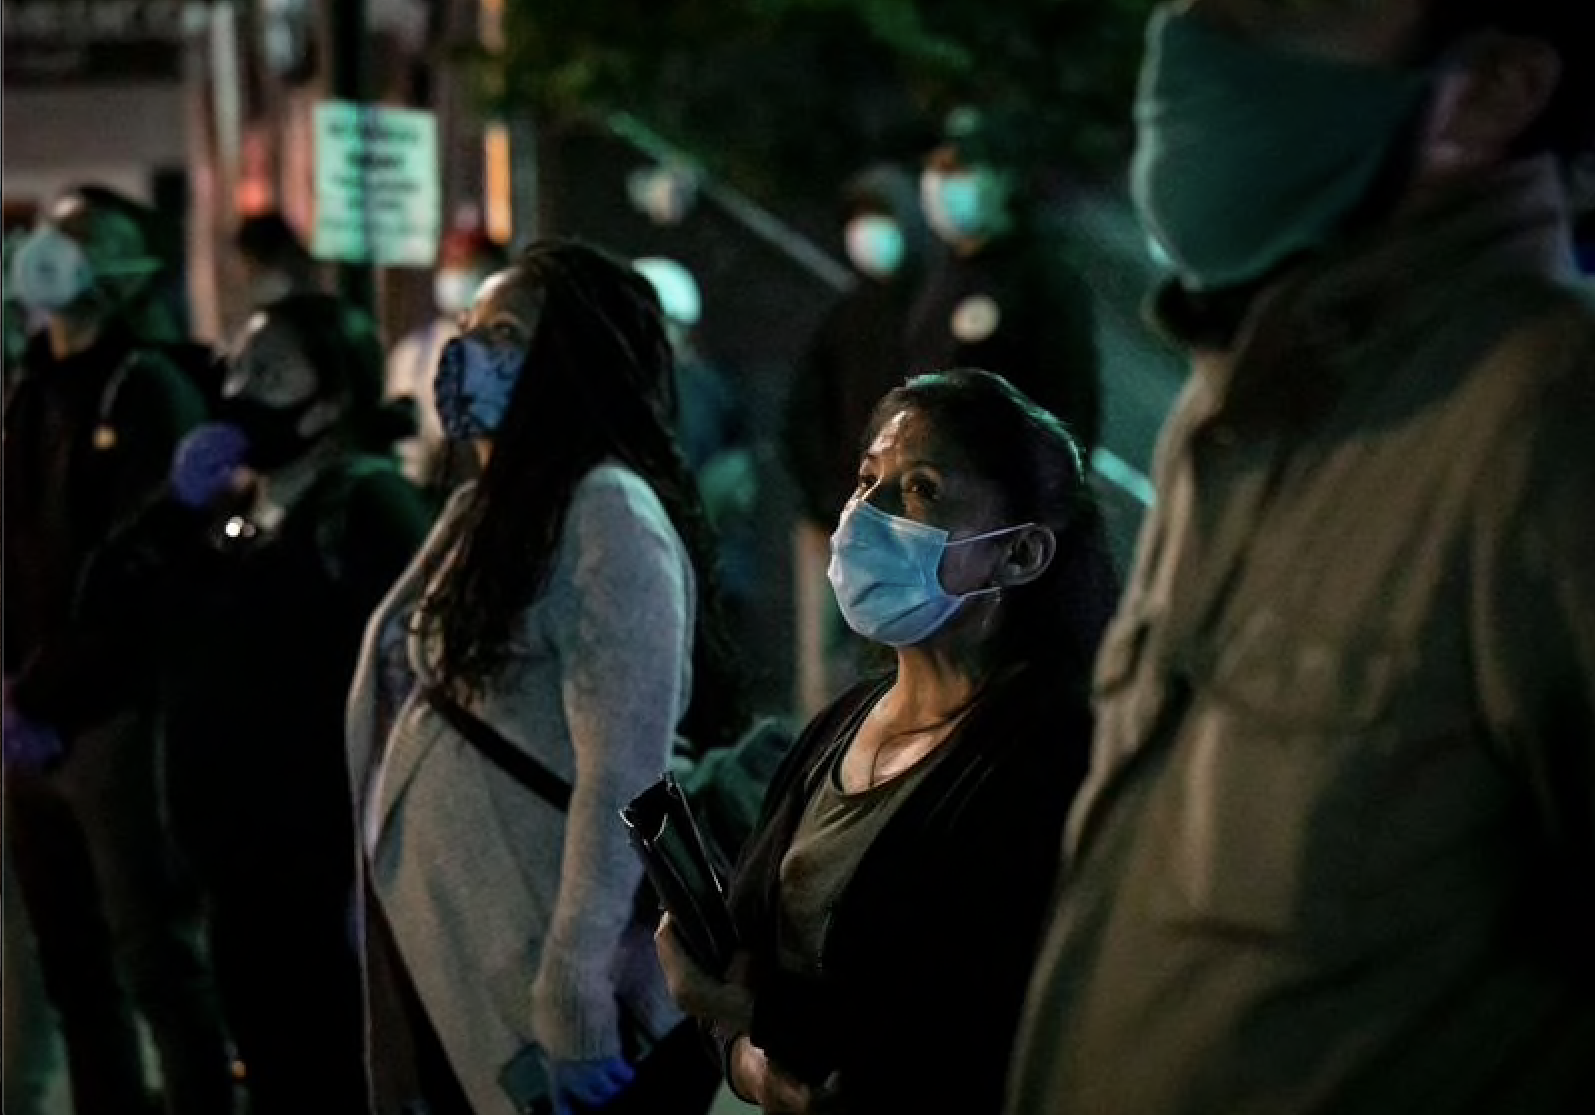 Minorities and immigrants in N.Y. financially devastated due to pandemic: report